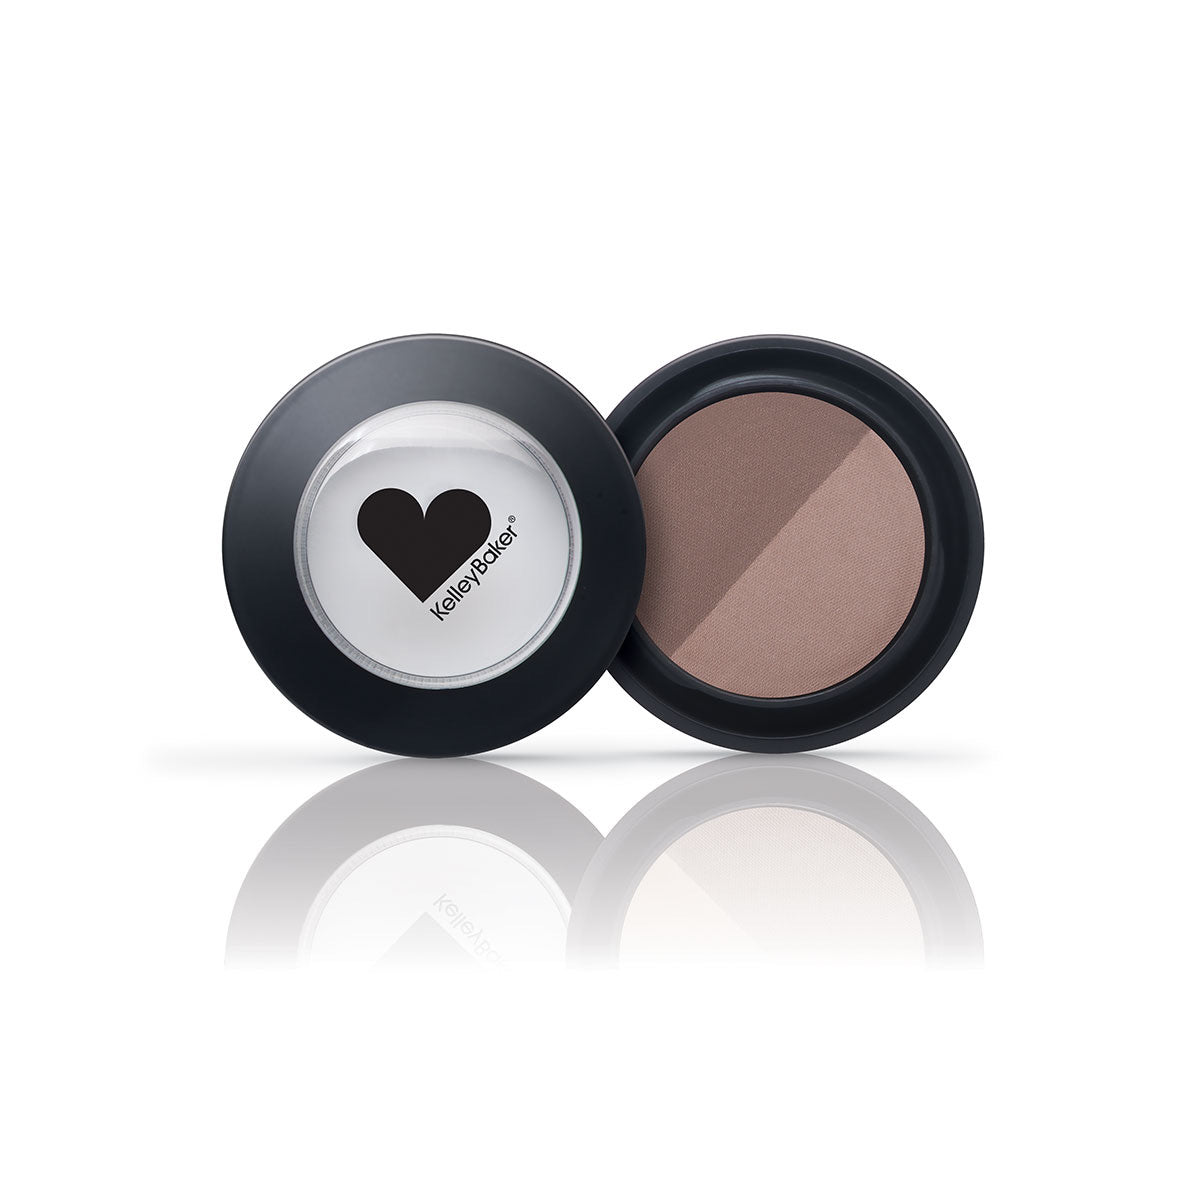 KELLEY BAKER BROW POWDER DUO